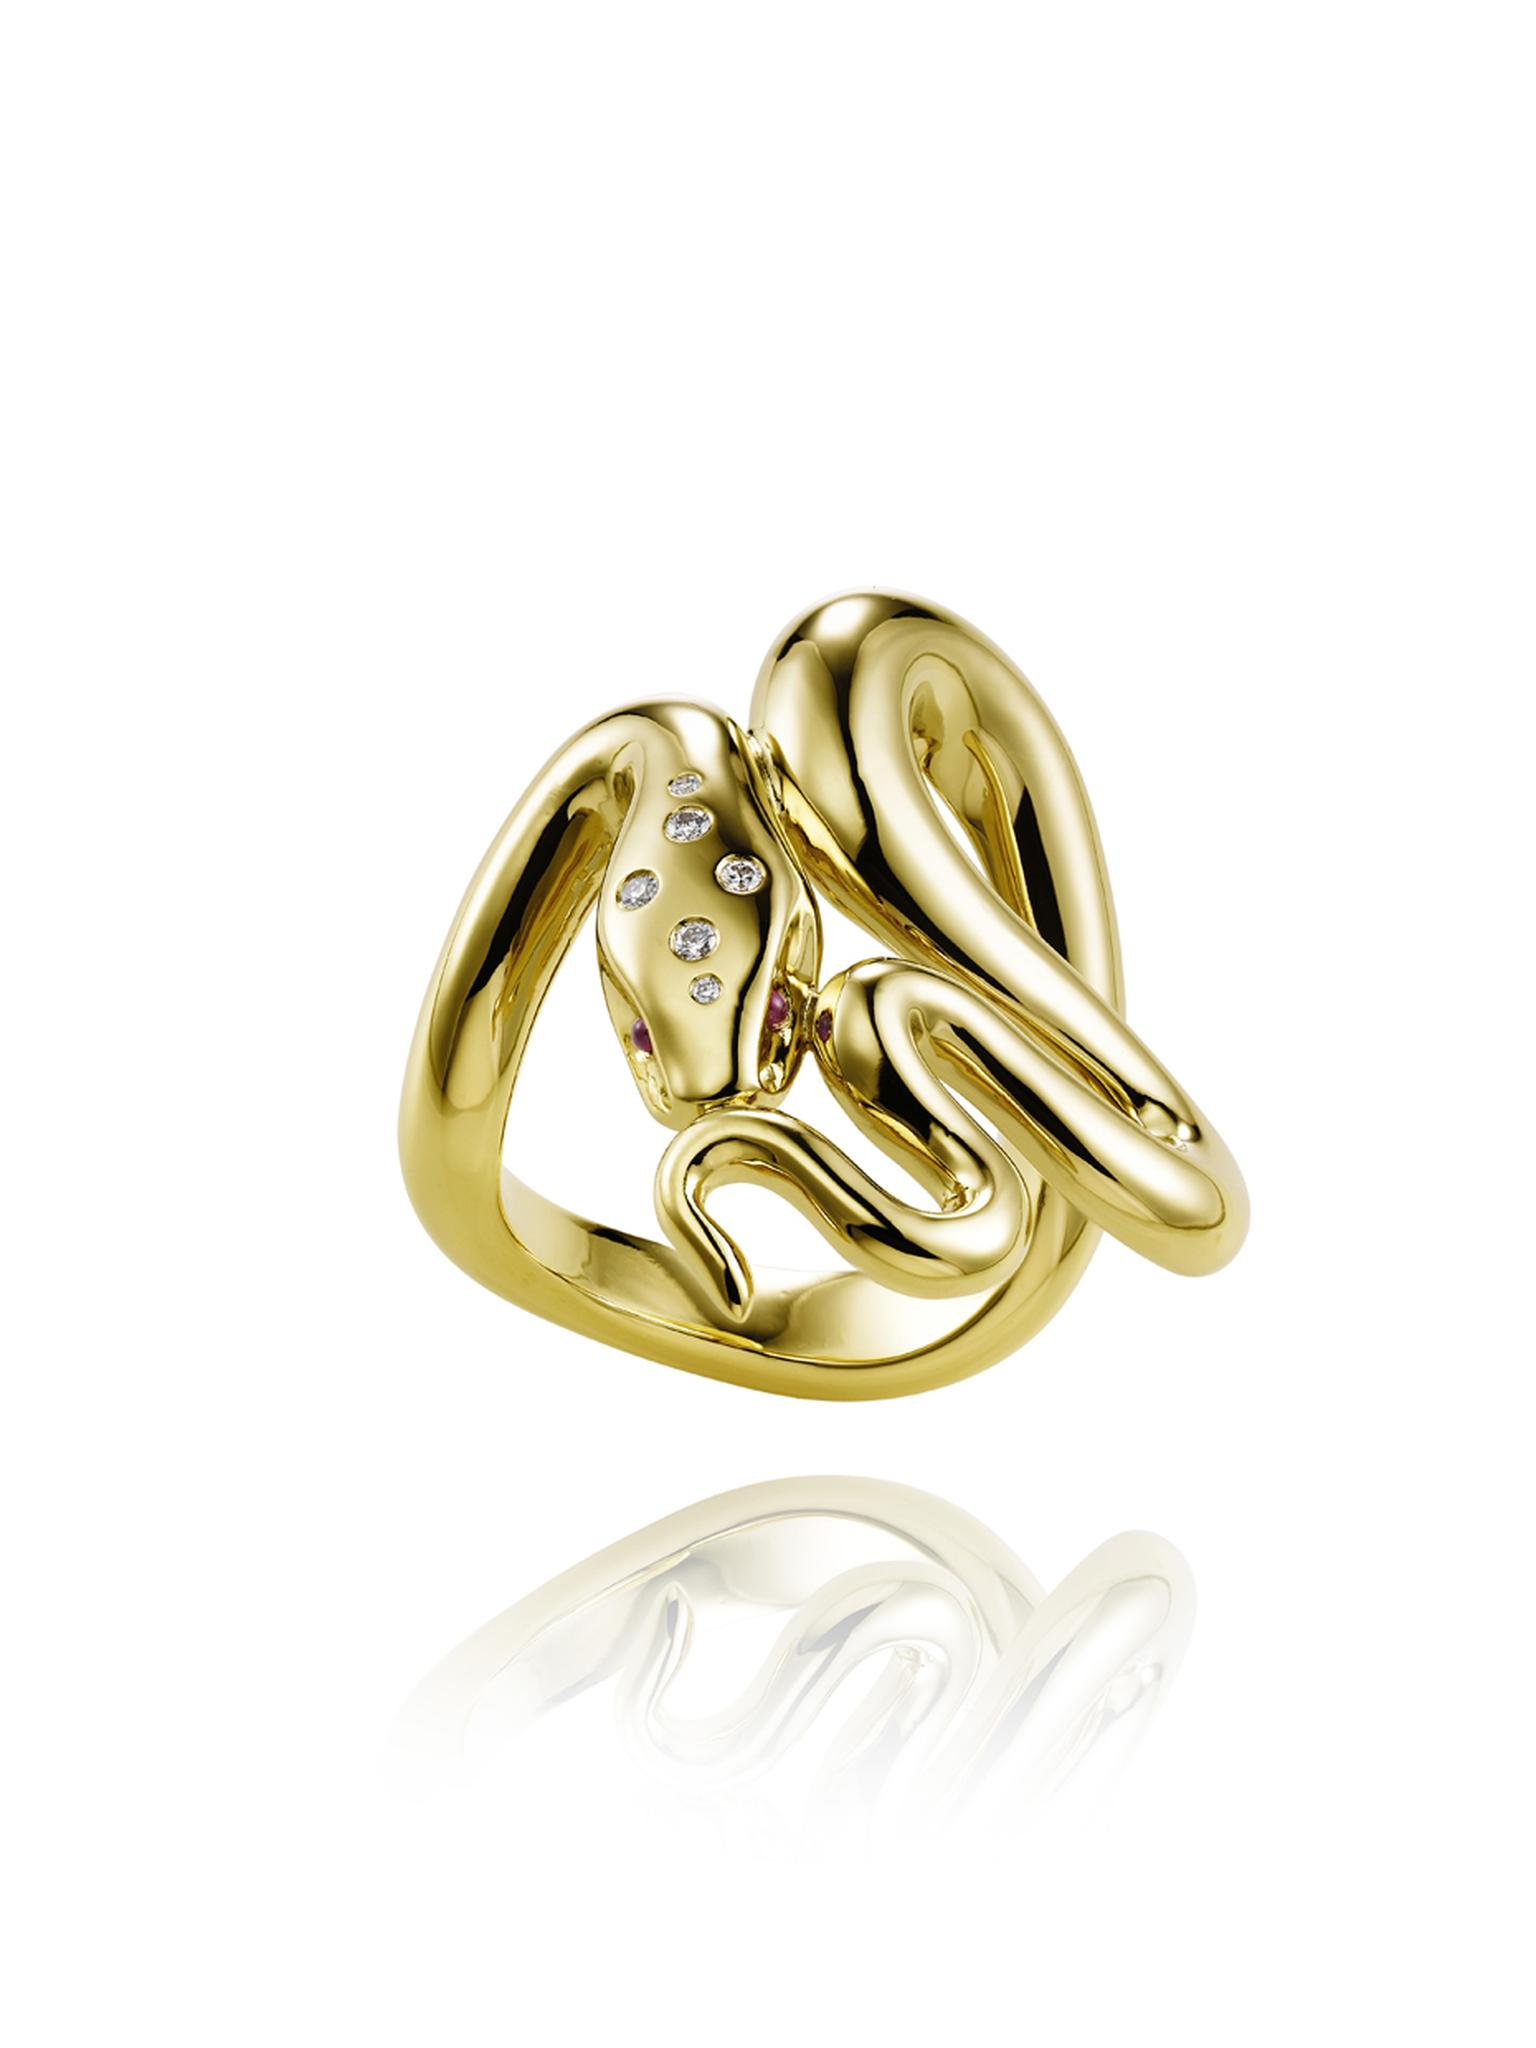 Harumi for Chopard gold Snake ring with diamonds